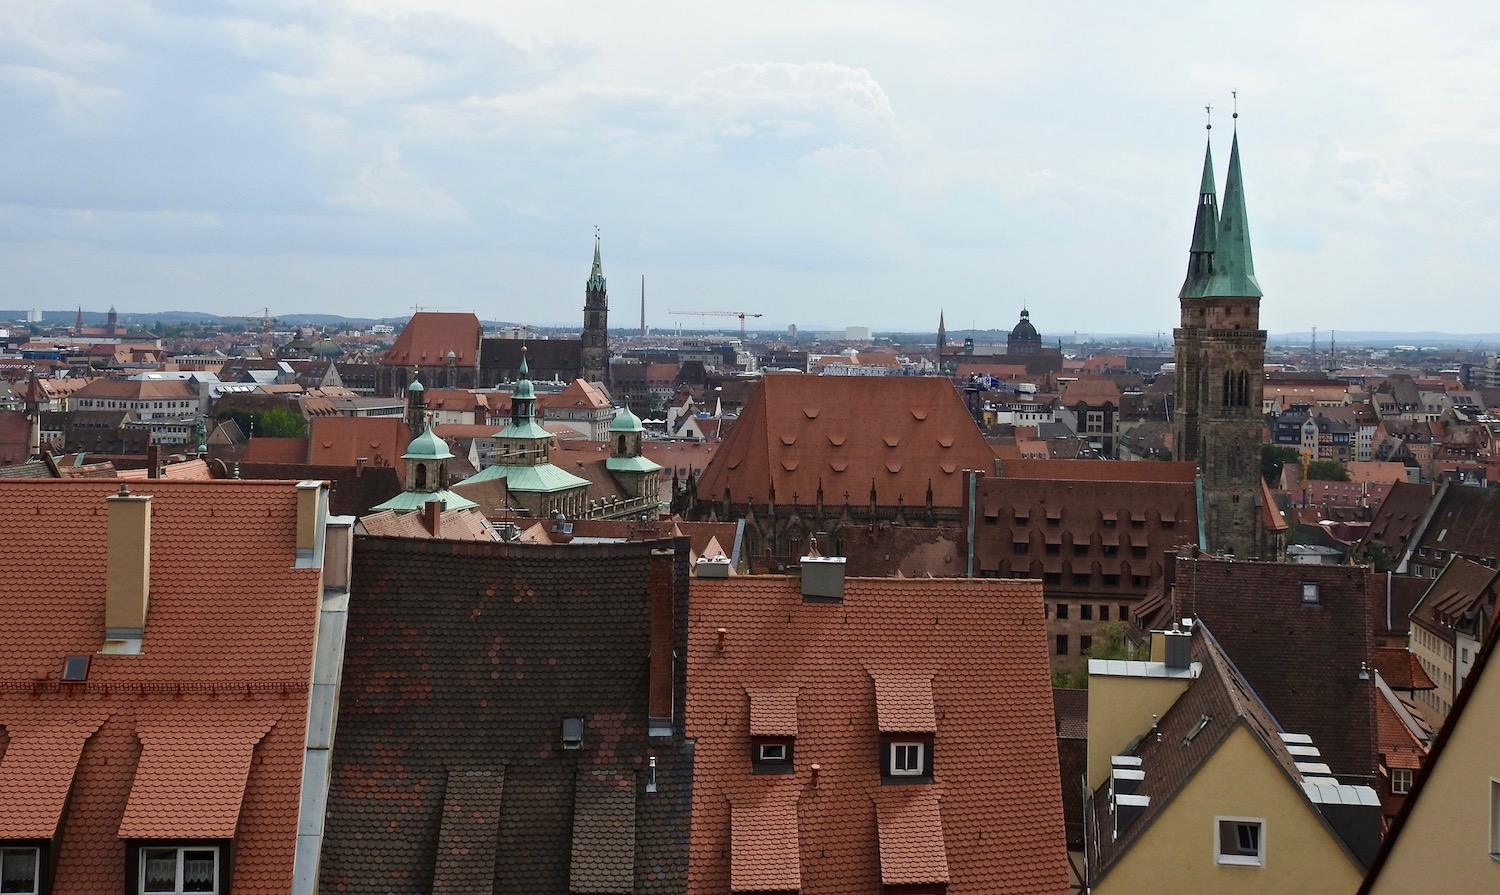 Overview of Nuremberg from the Kaiserburg Imperial Castle.